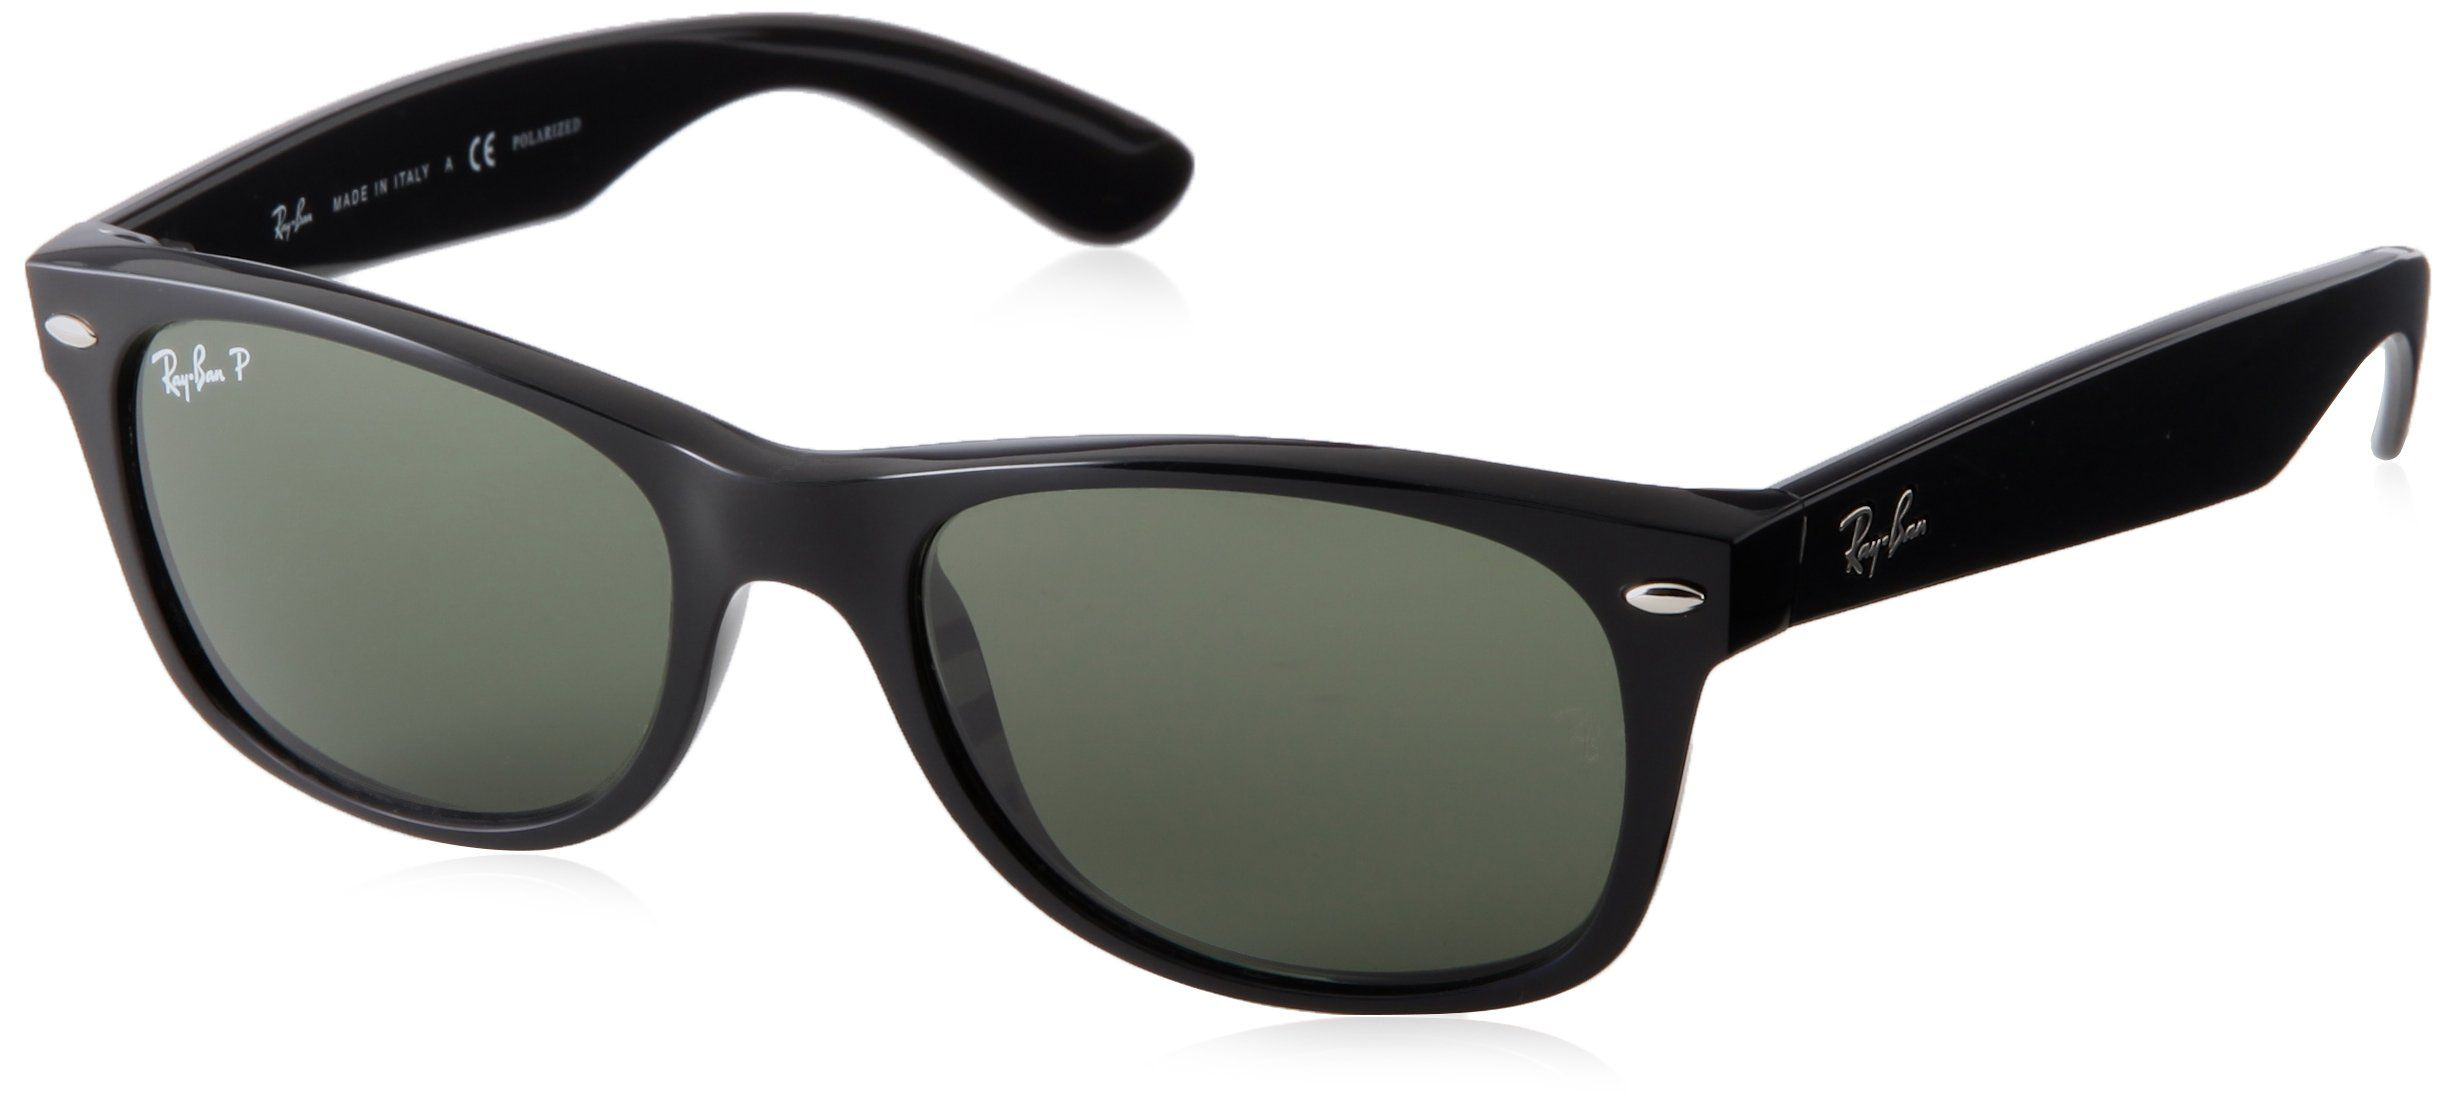 5650fcc68bb Ray Ban Rb2132 Black 901 76 « One More Soul